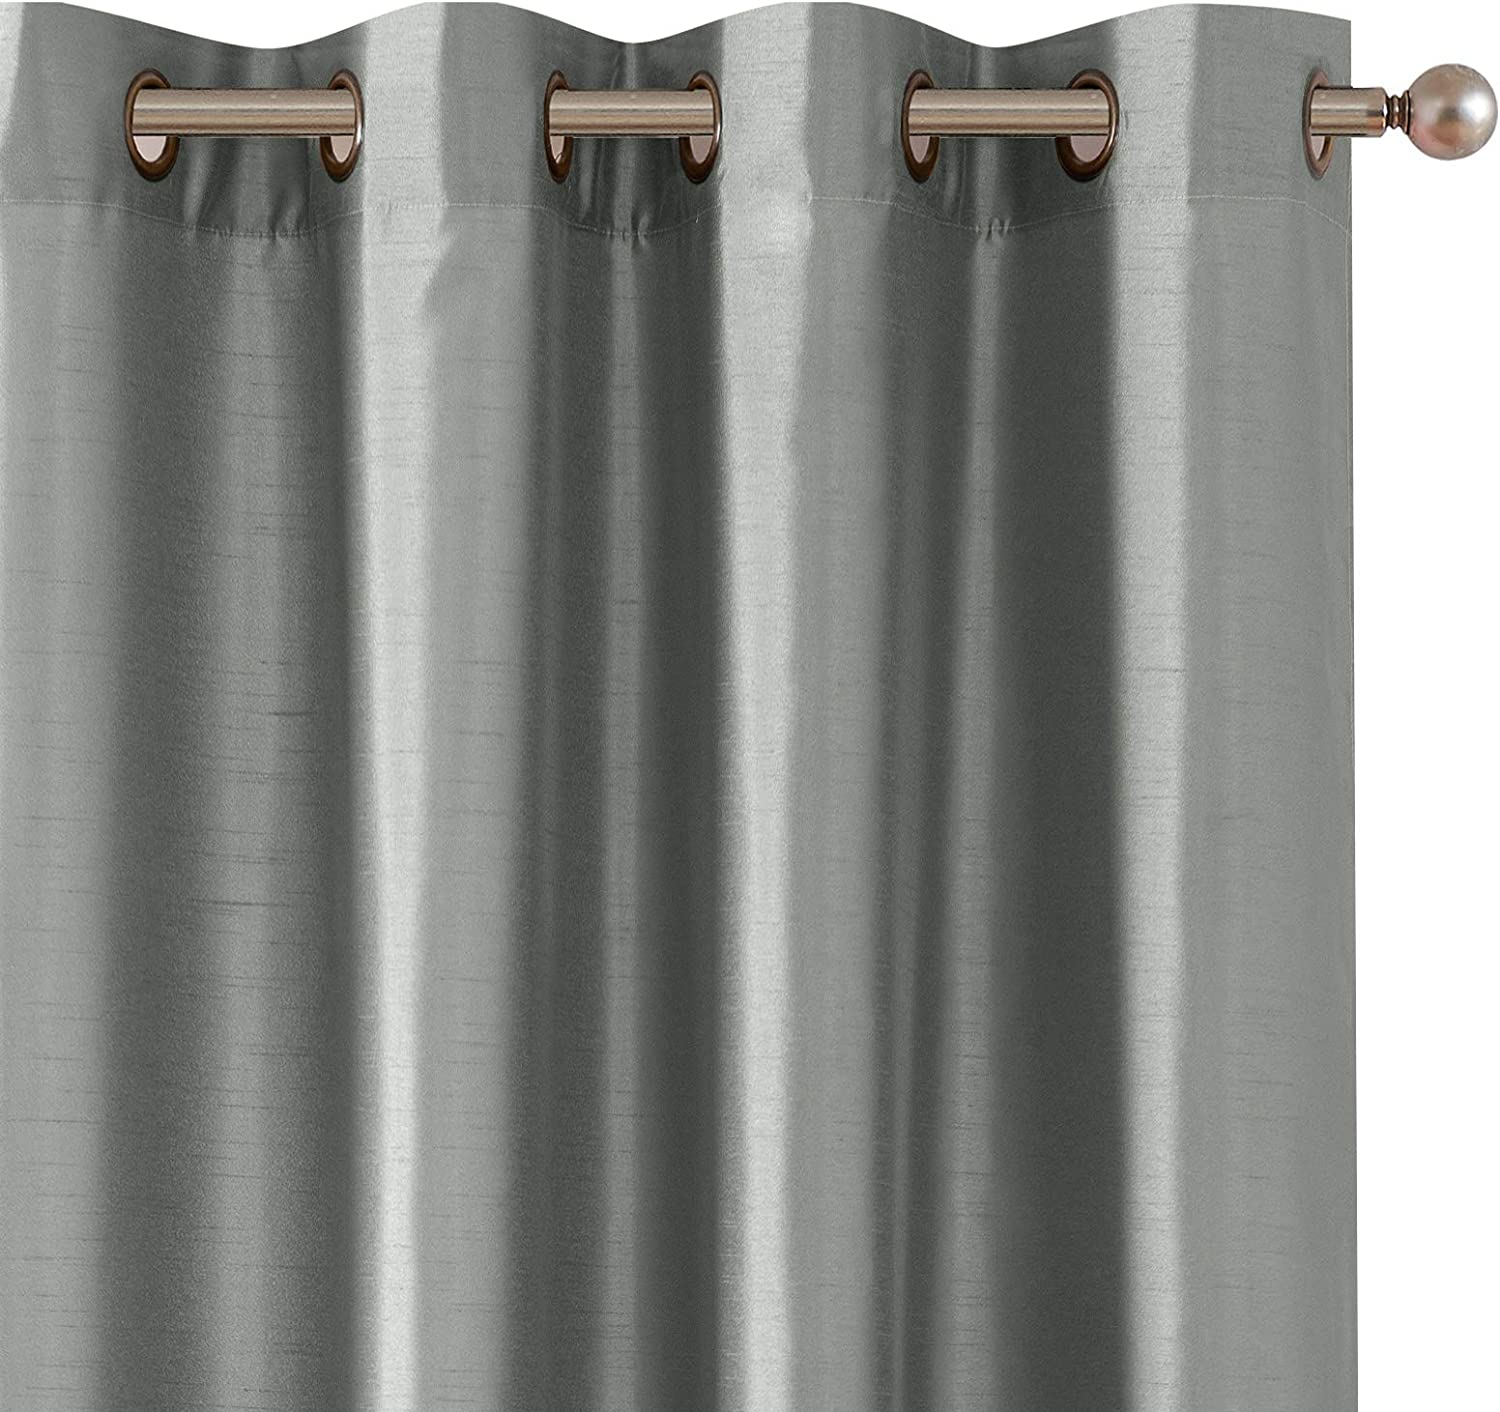 Champagne Brown Satin Ribbon Silk Curtain Panels 52x84 Grommet Drapes Home And Living Bedroom Decor Housewares Window Treatments Blackout